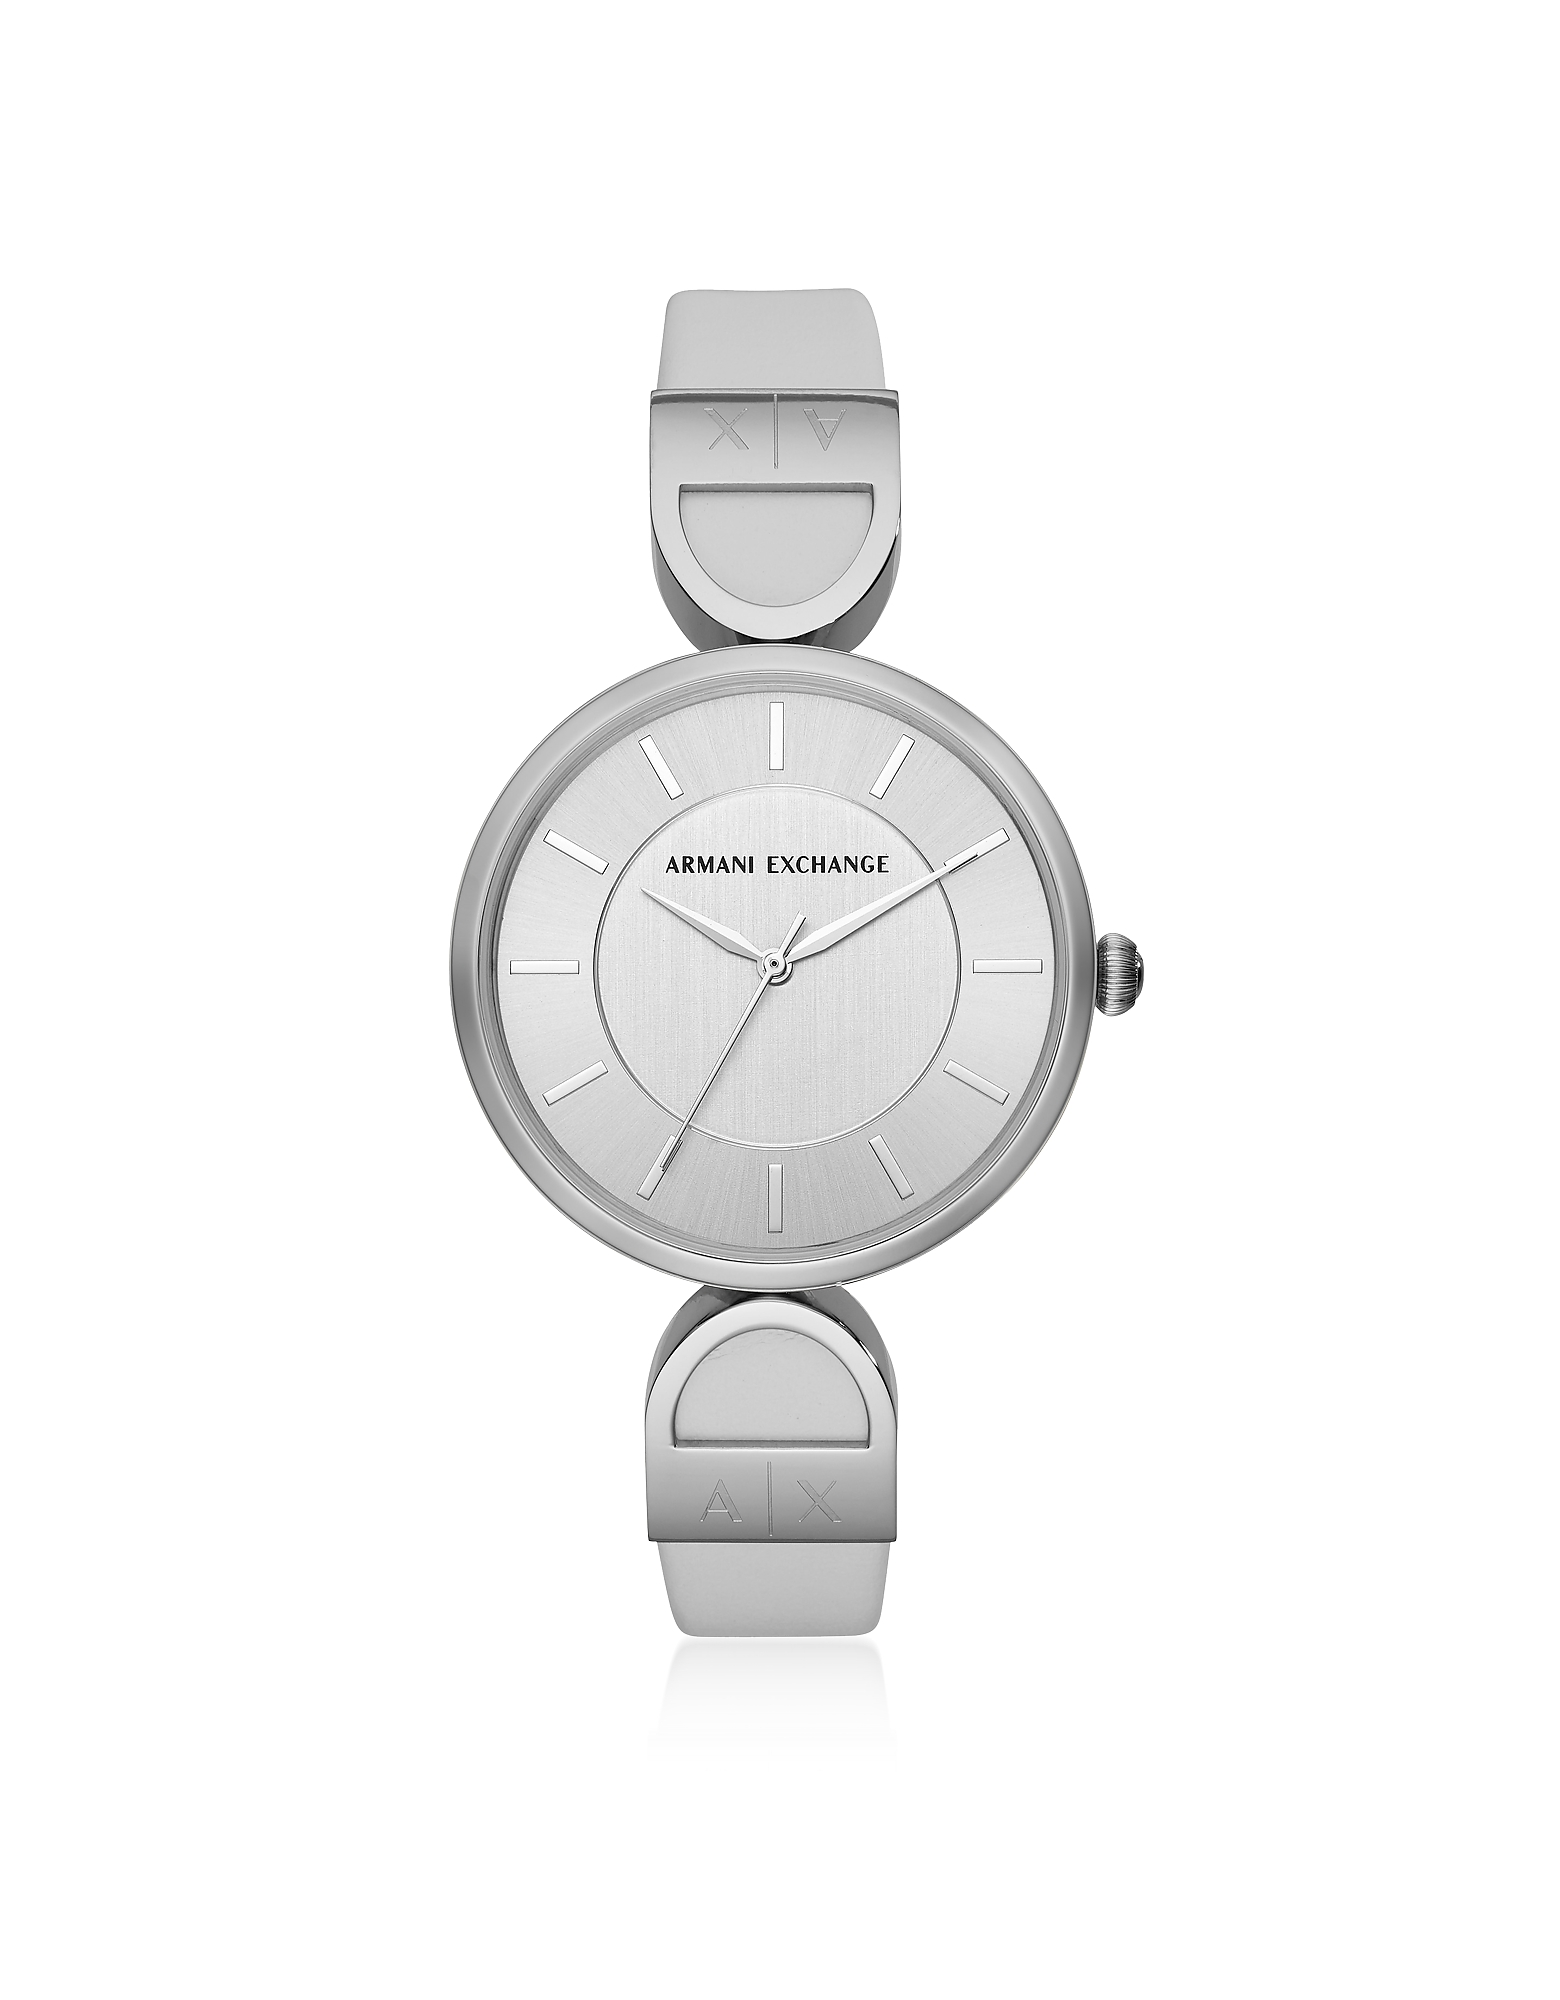 Emporio Armani Women's Watches, Brooke Stainless Steel Gray Women's Watch